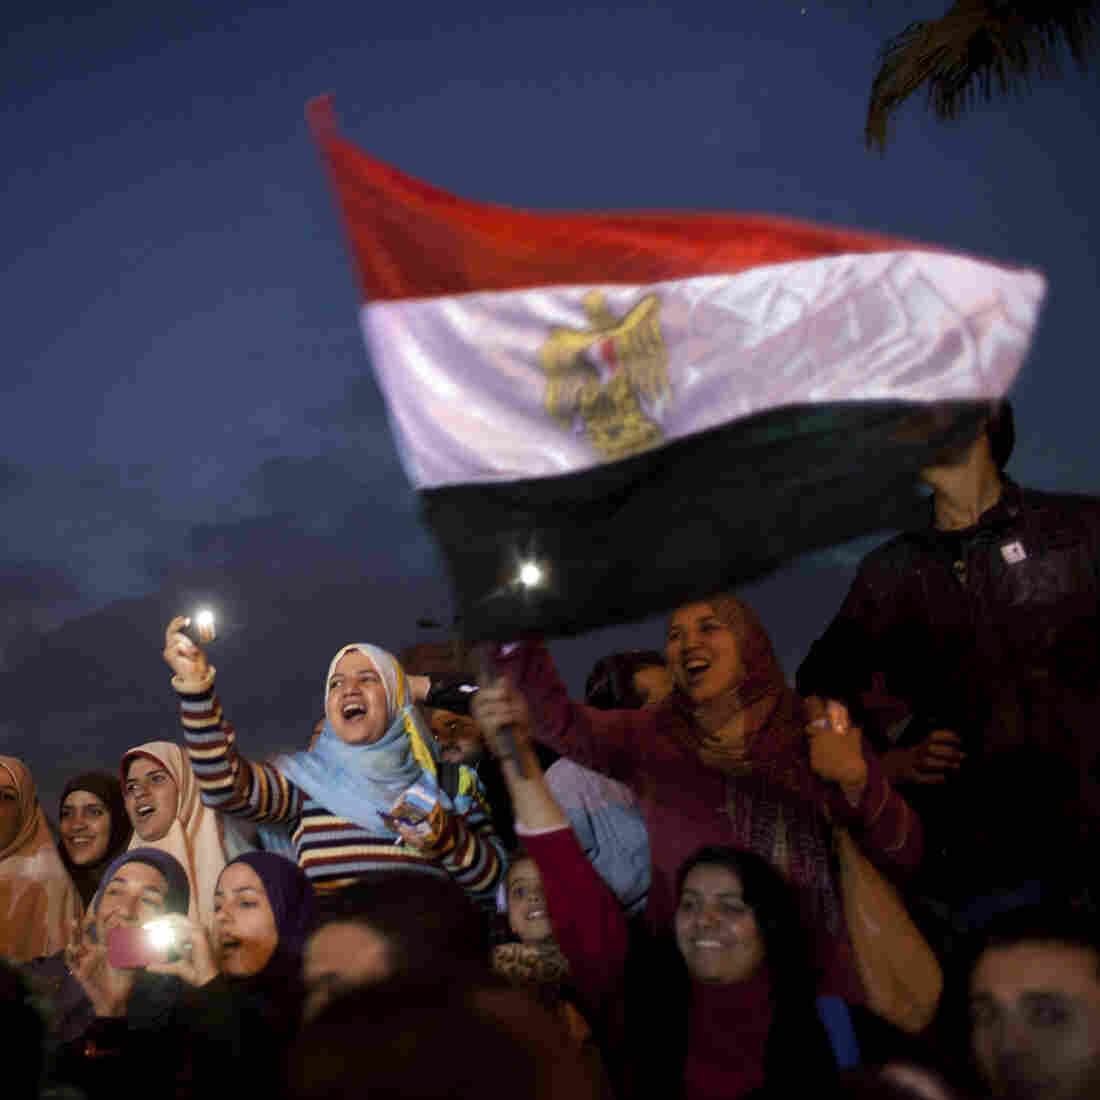 In Egypt's Political Turmoil, Middle Ground Is The Loneliest